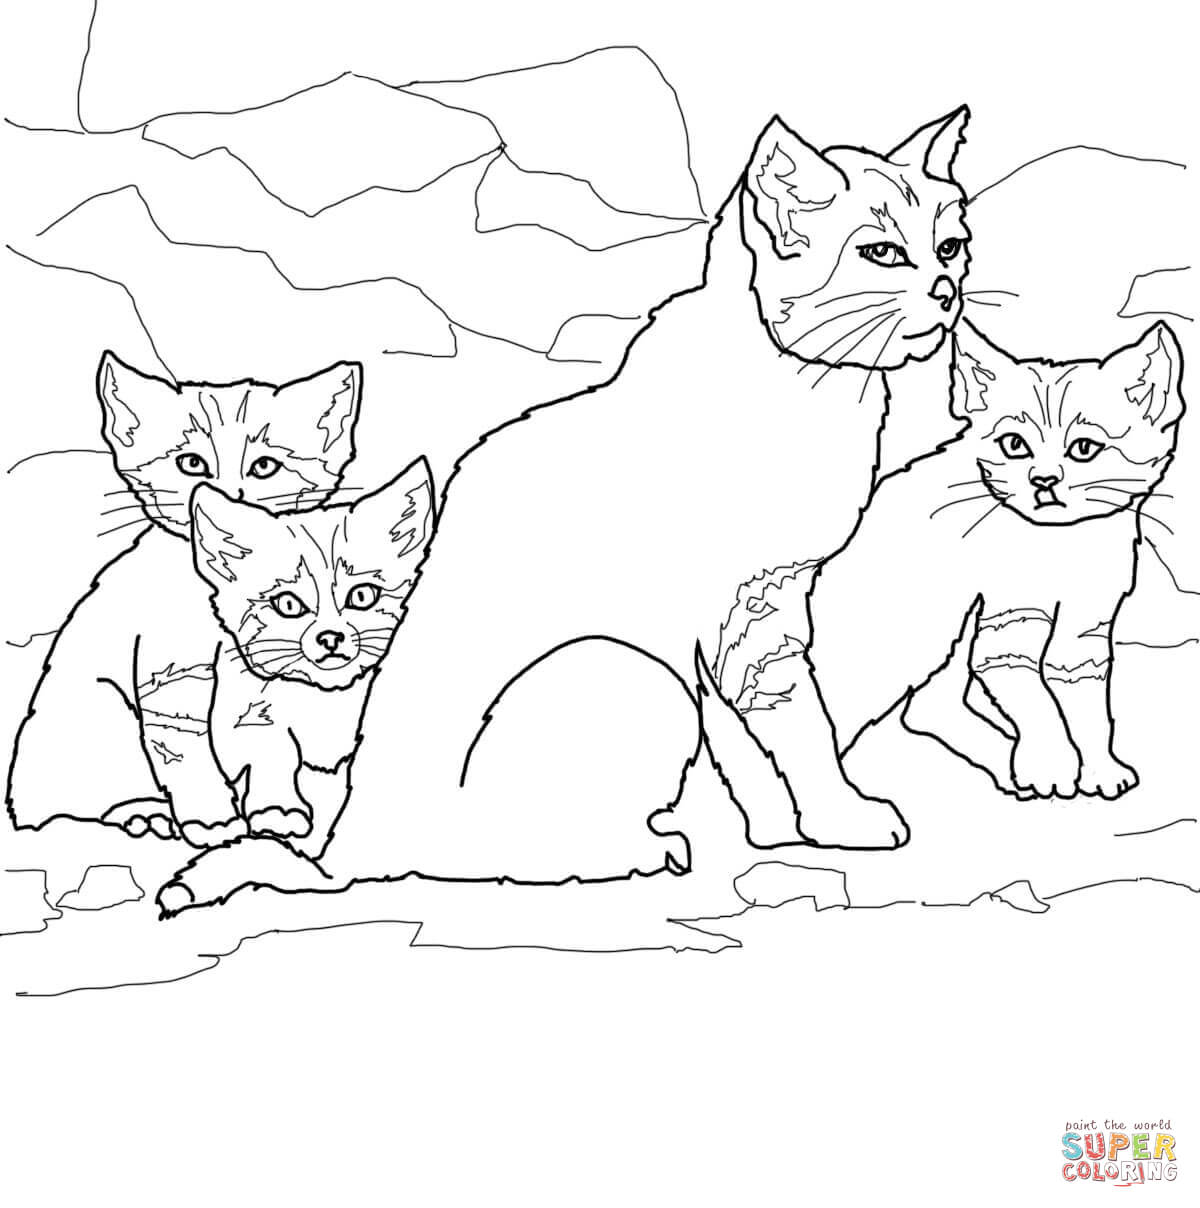 Sand Cat clipart #12, Download drawings